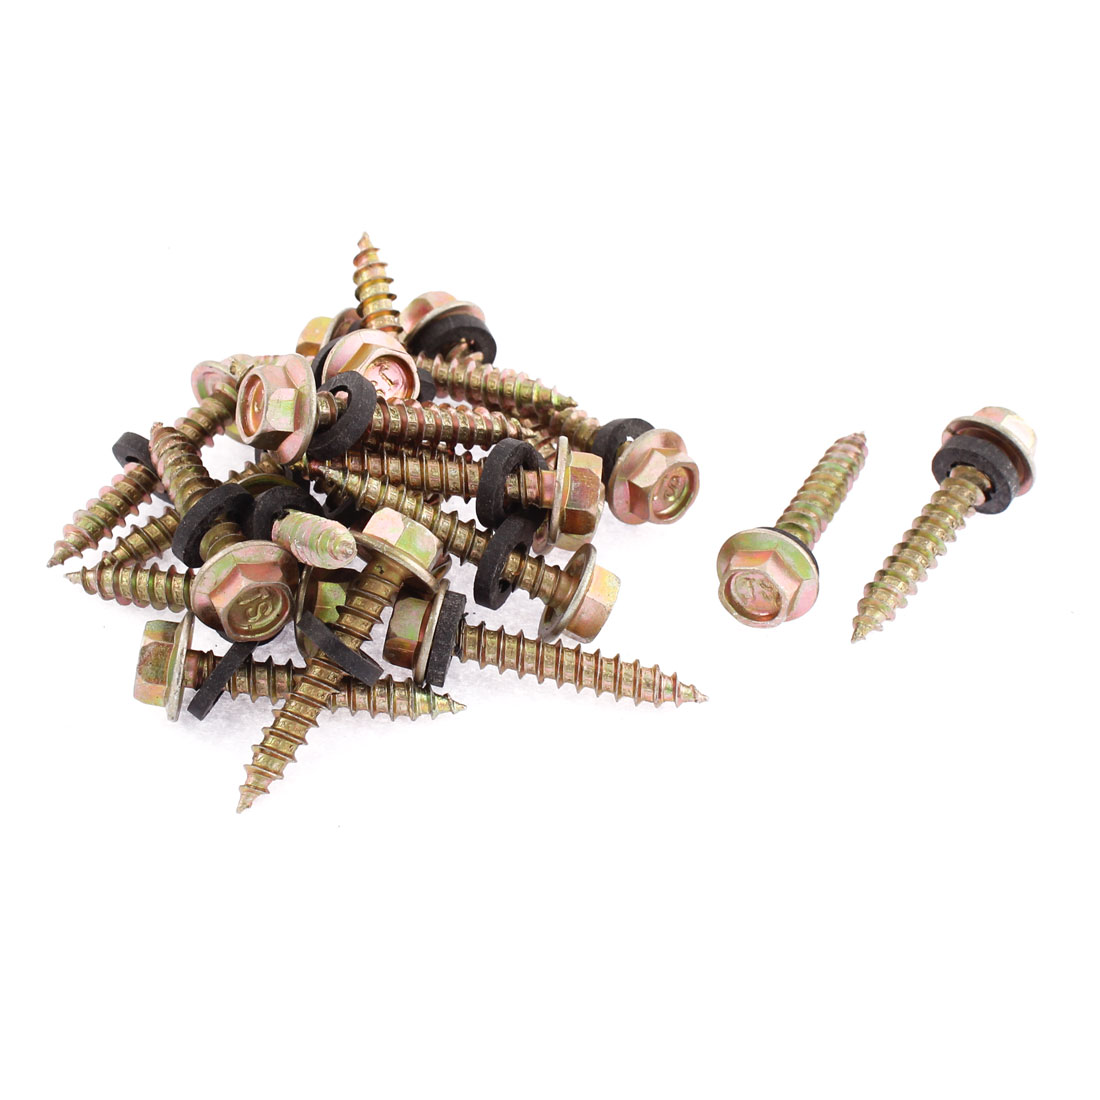 20Pcs M5 x 30mm Male Thread Hex Washer Head Self Tapping Drilling Screw Fastener 36mm Long